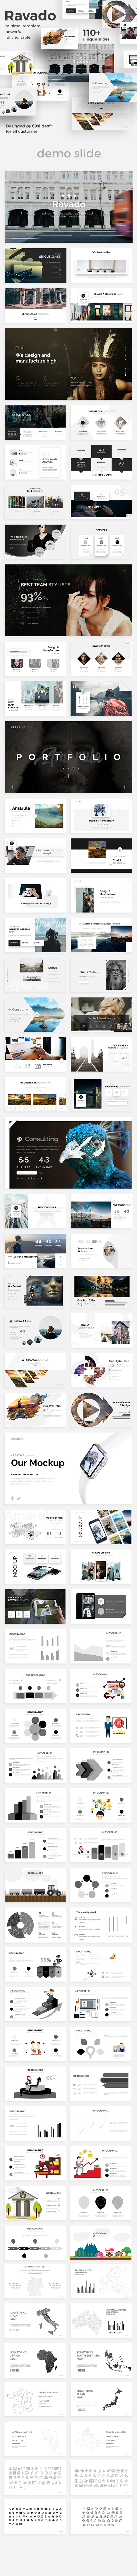 Ravado Creative Powerpoint Template - Creative PowerPoint Templates